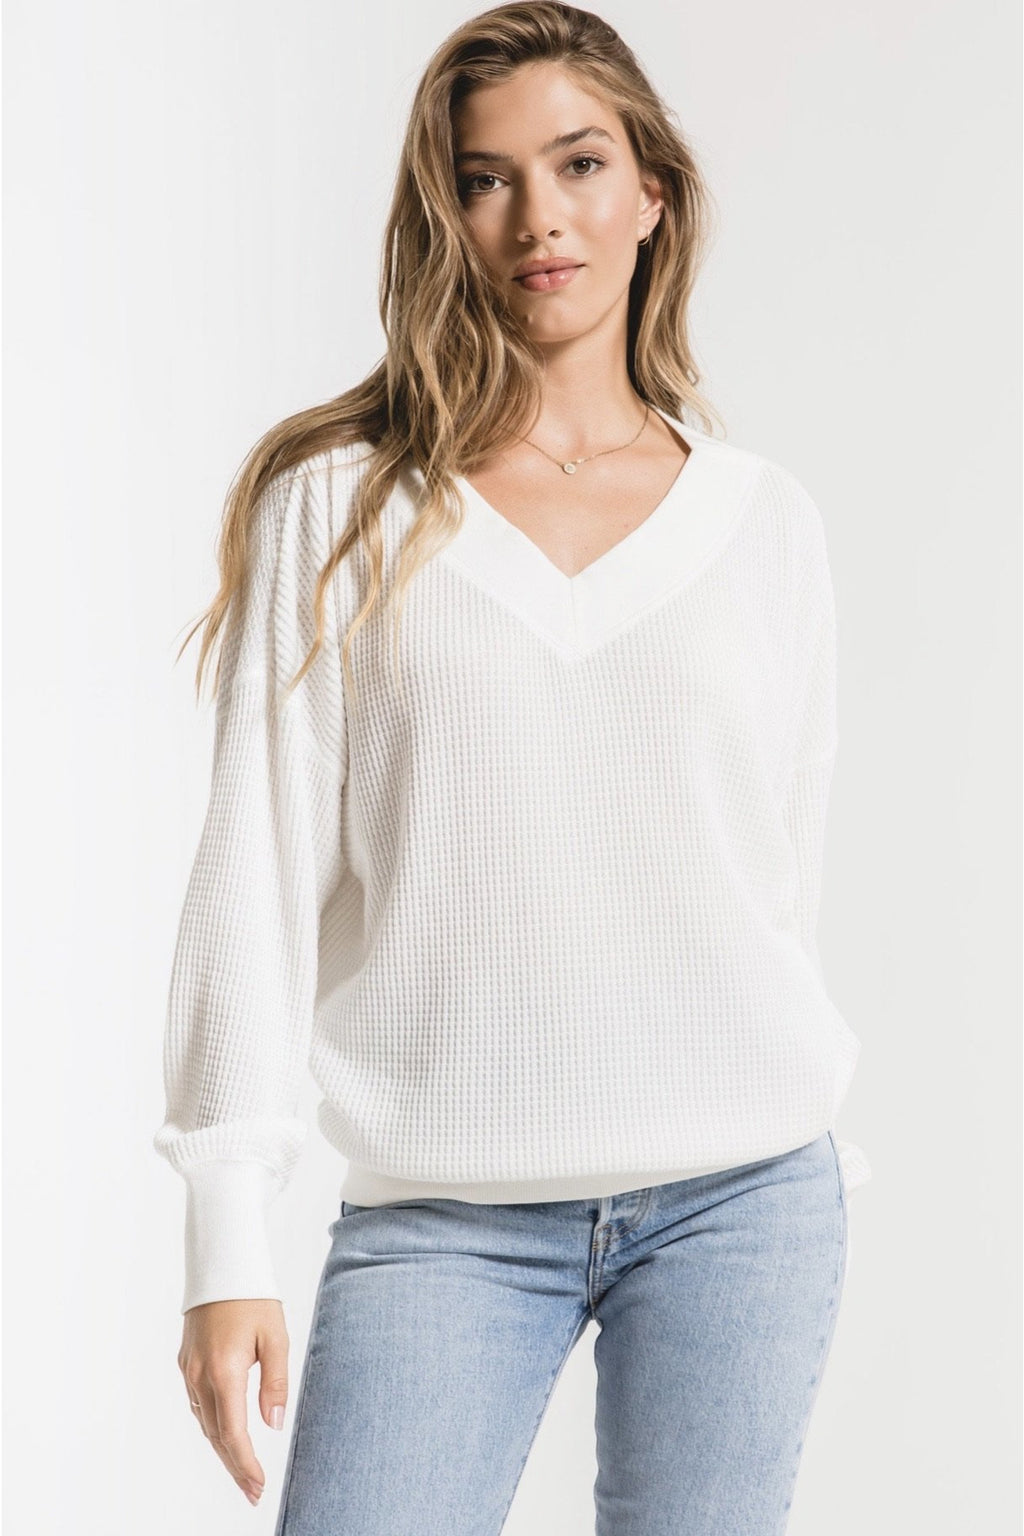 Emilia White Thermal Top